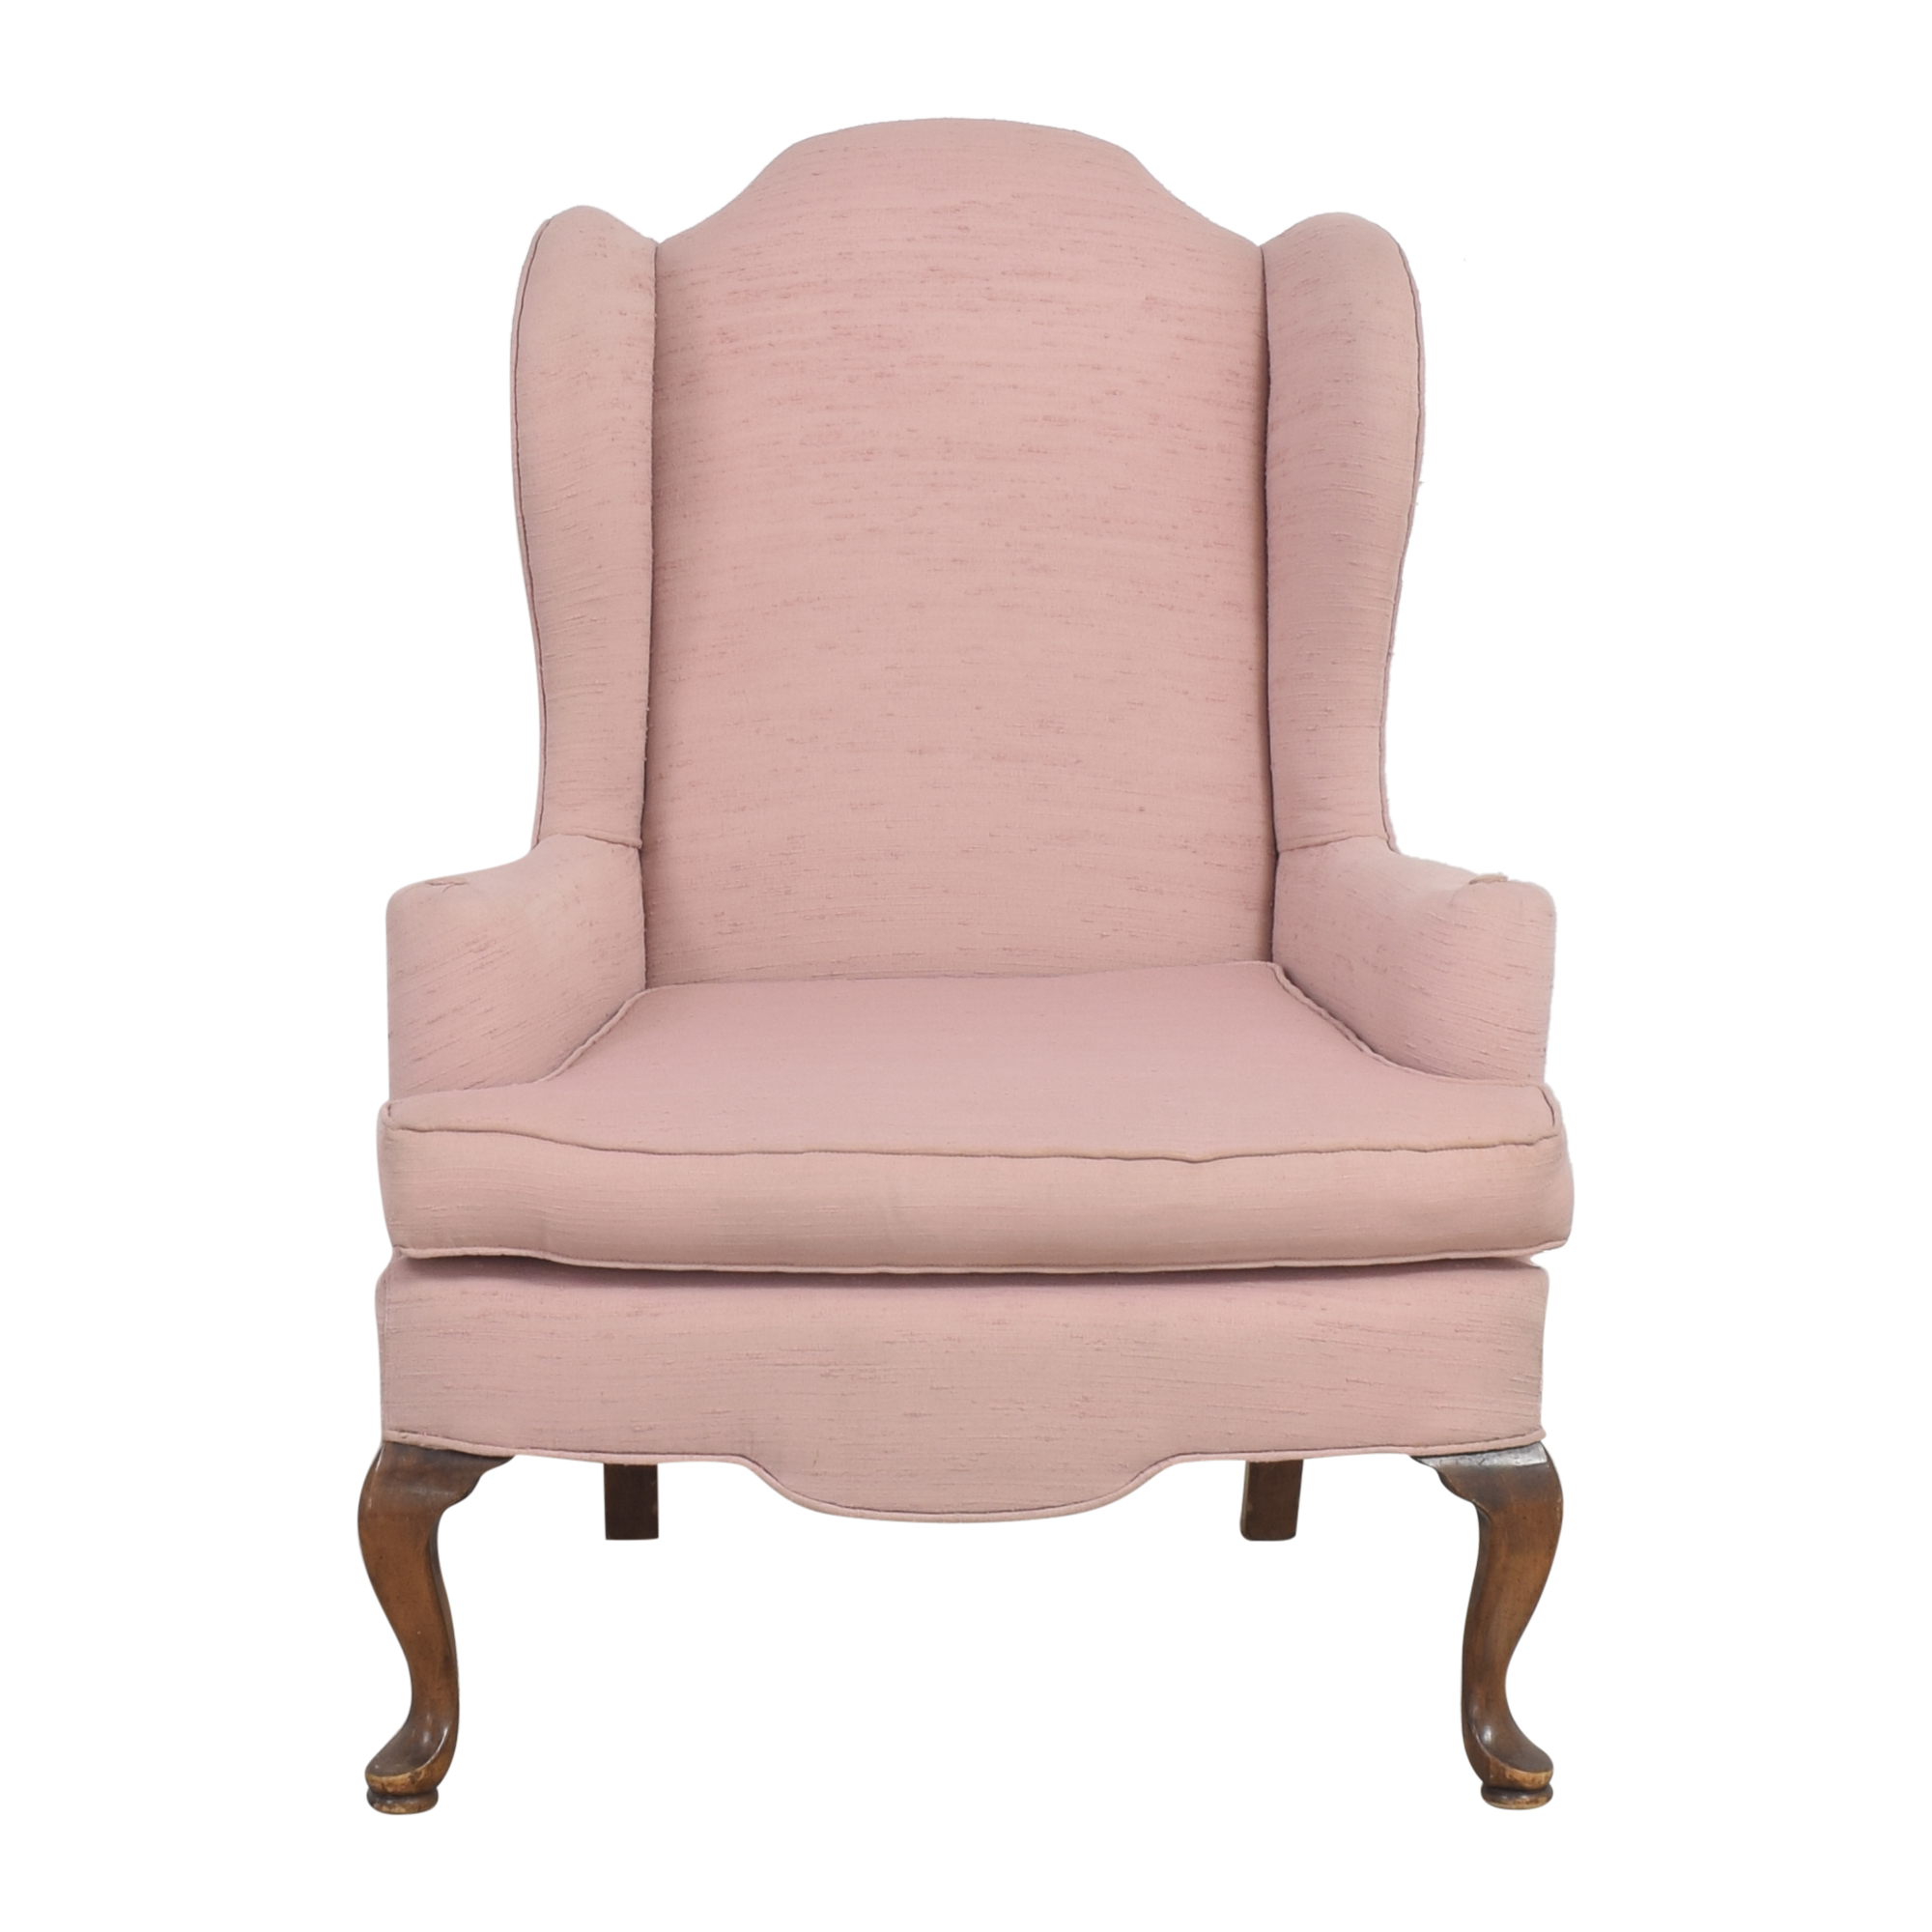 buy Ethan Allen Queen Anne Accent Chair Ethan Allen